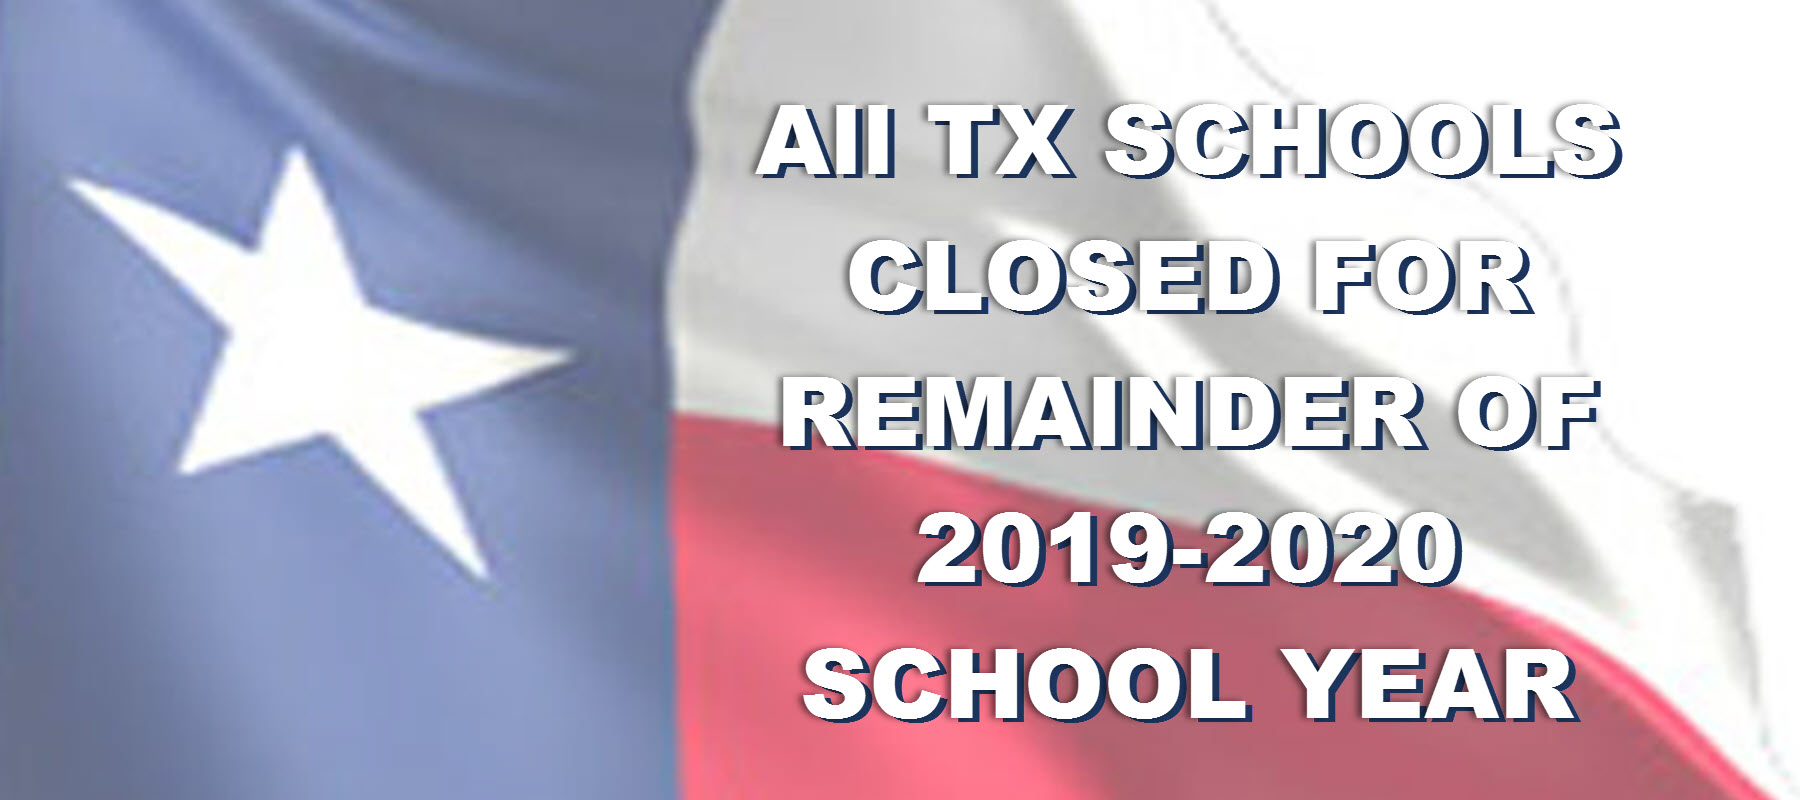 Texas Schools Closed for 2019-2020